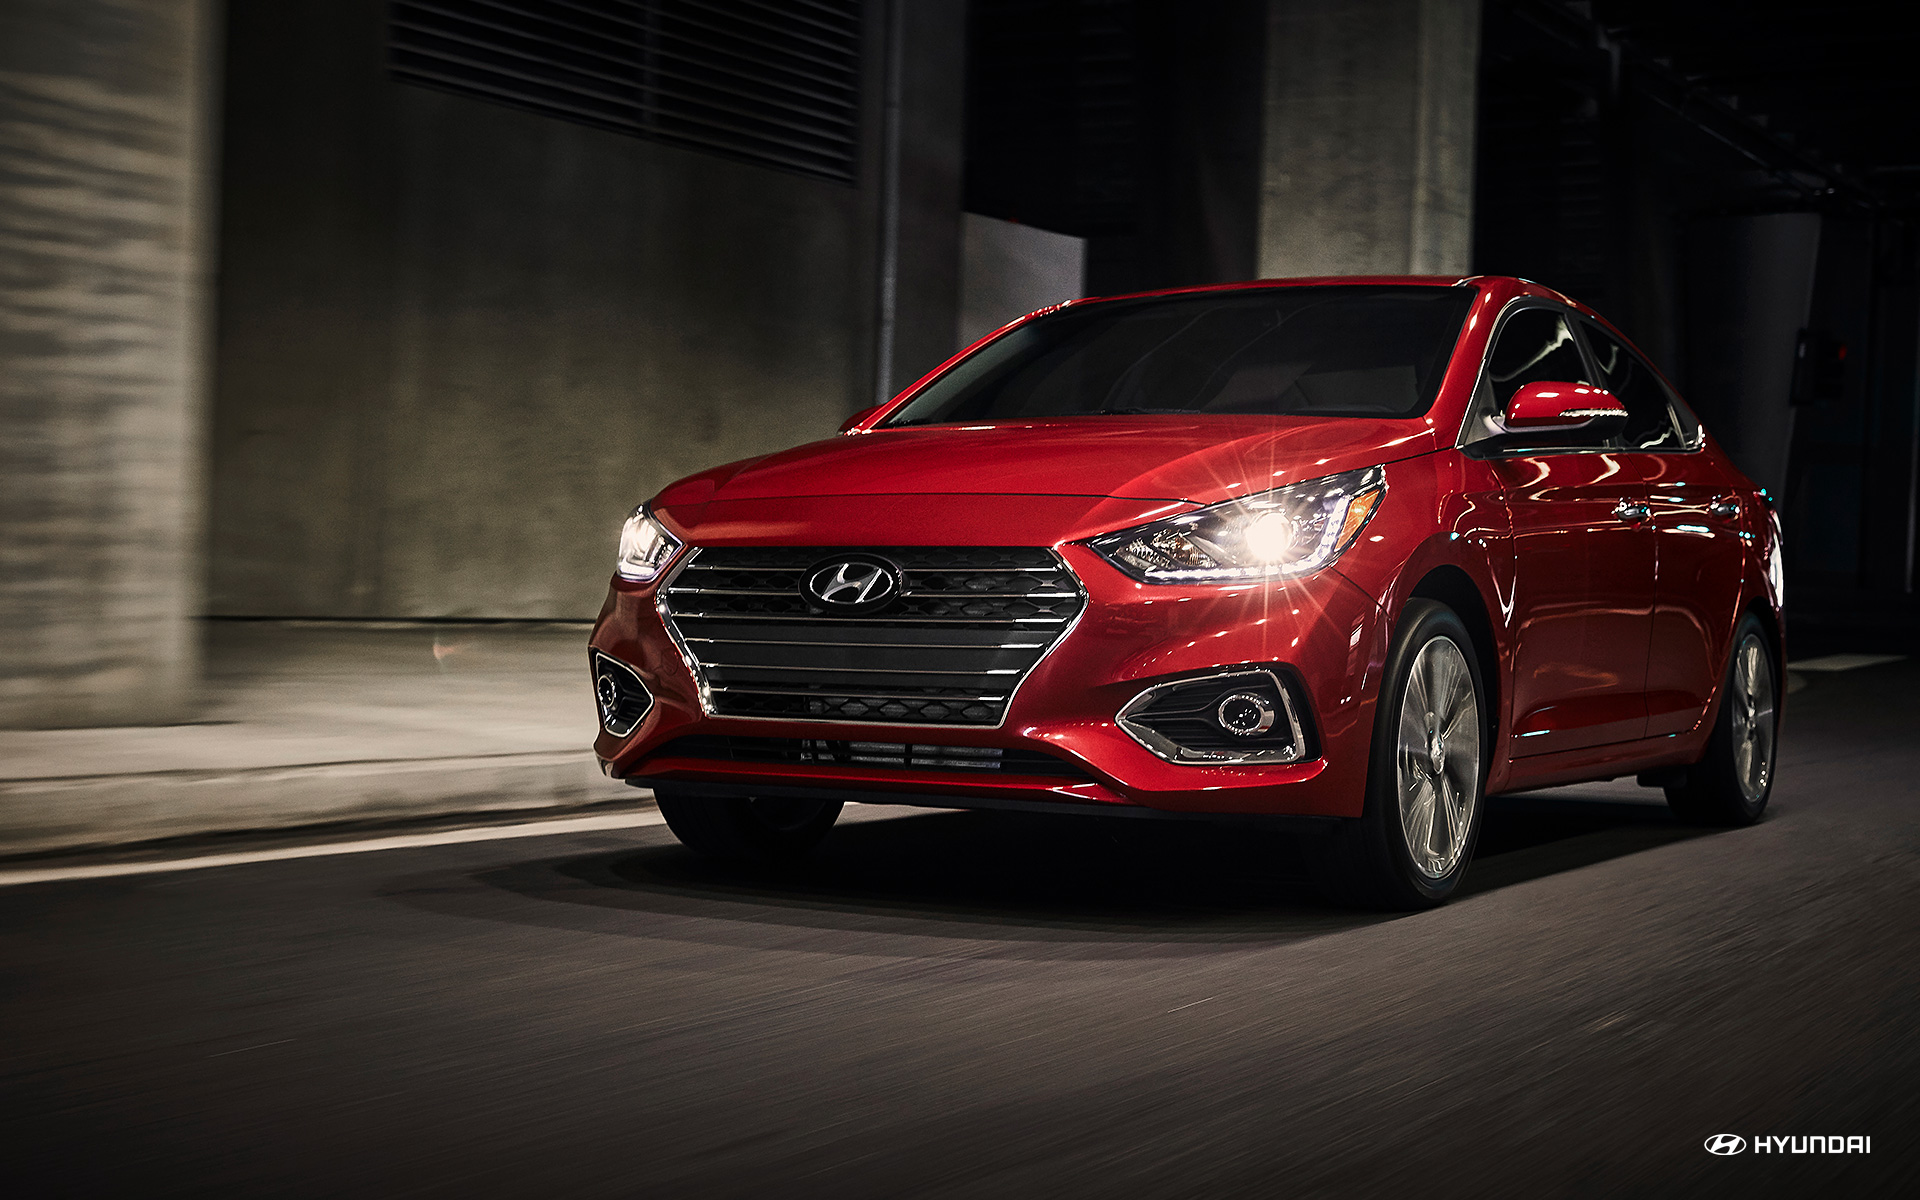 2018 Hyundai Accent Pomegranate Red Exterior Front